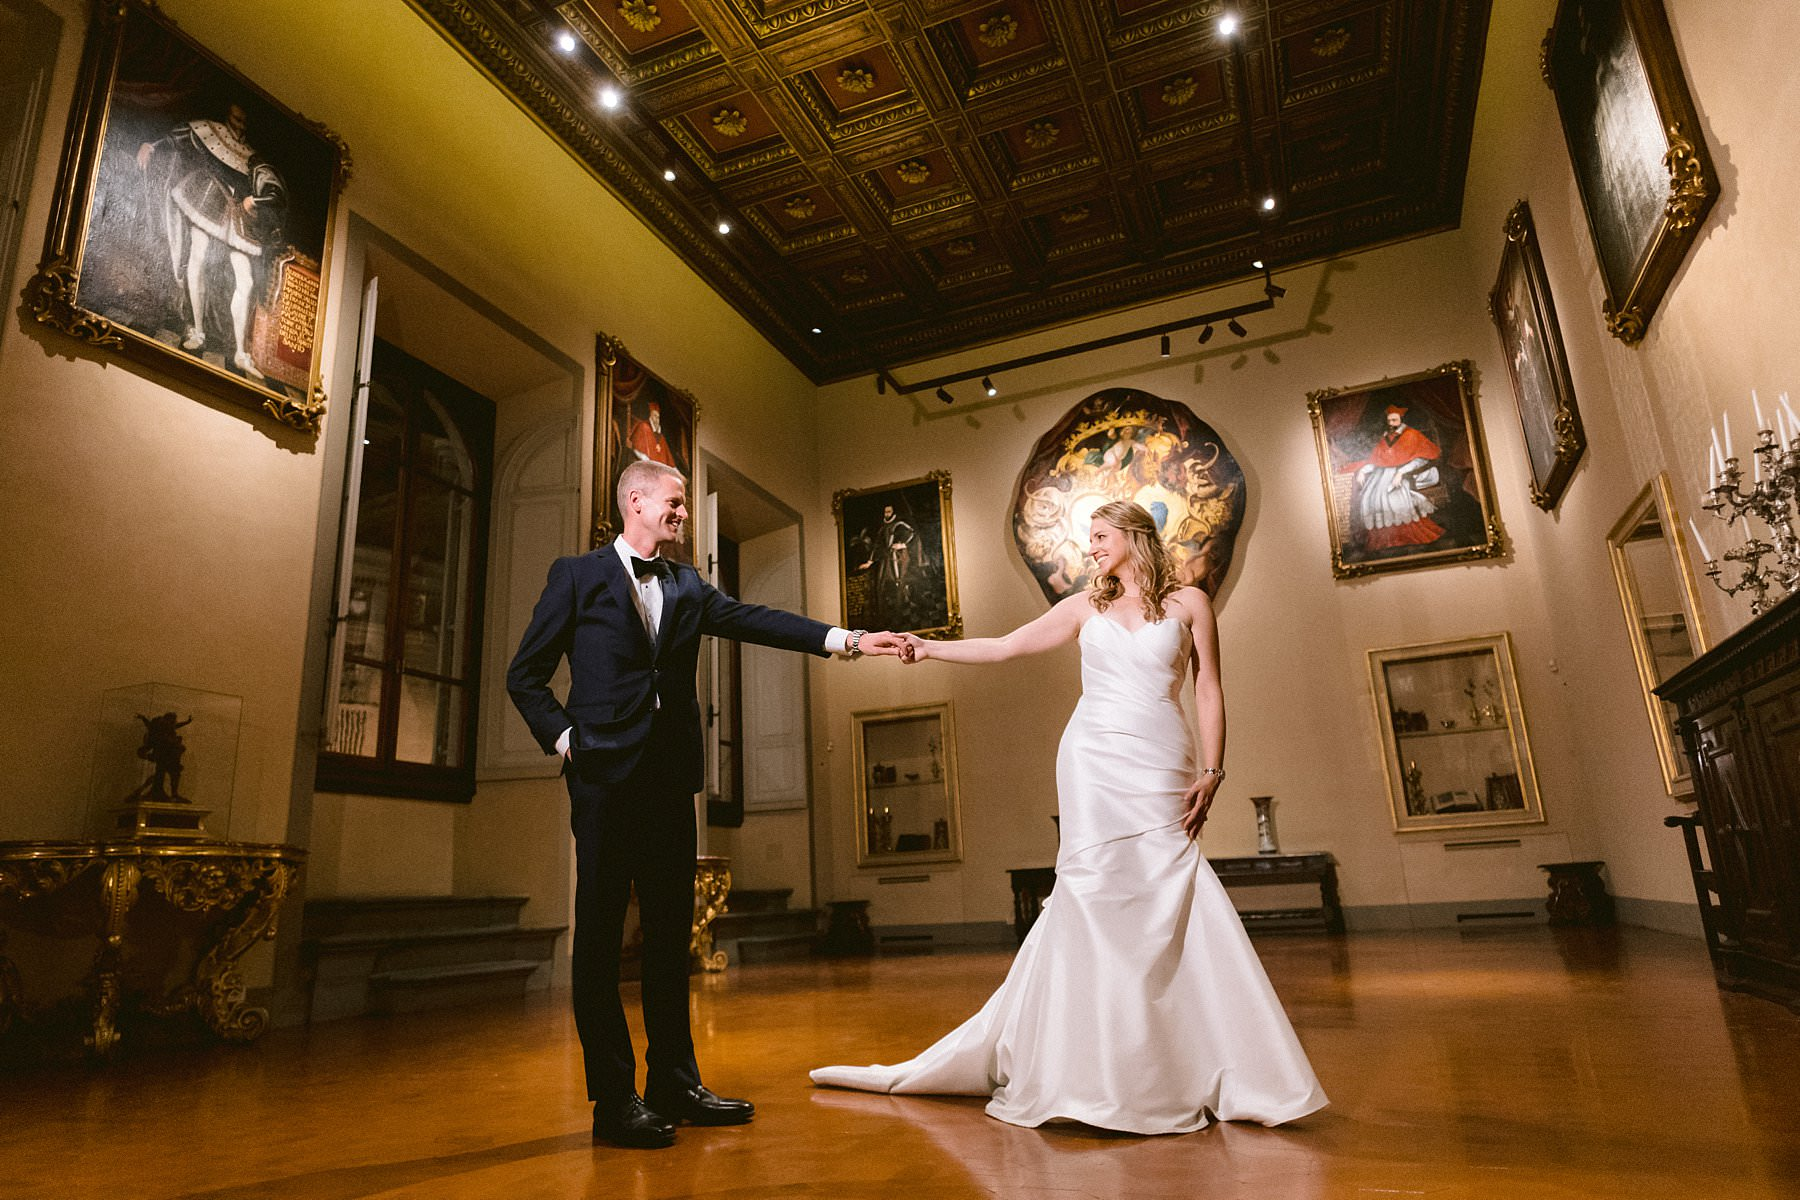 Beth and Evan's exquisite wedding: just like a dream. Bride and groom wedding photo at Palazzo Gondi, one of the most renowned Renaissance palaces in Florence, and it's open to guests only on special occasions. A real hidden treasure located in the very heart of the historical center, next to Palazzo della Signoria